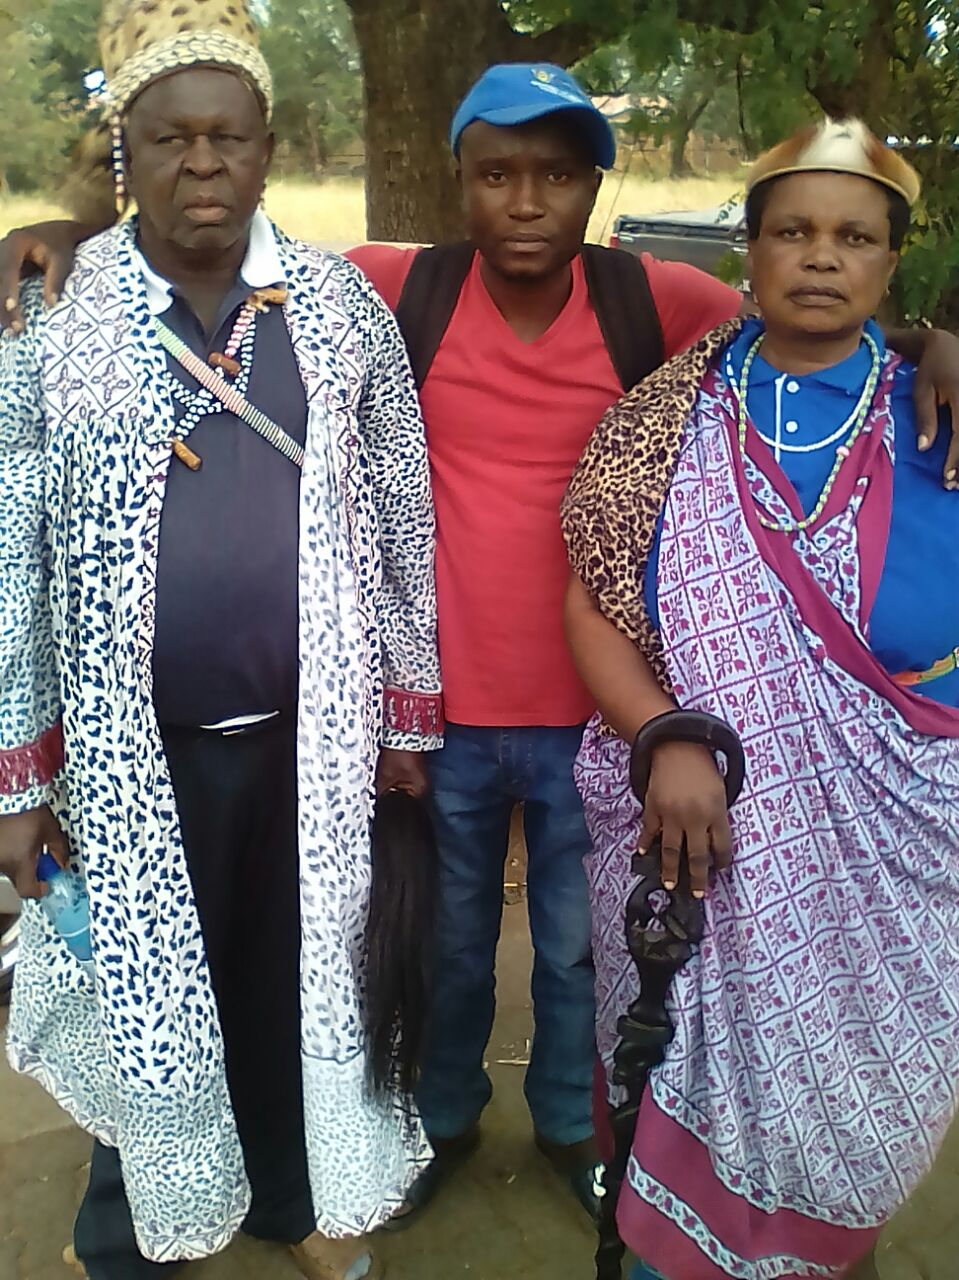 Malamulele- Traditional healers marched against ritual